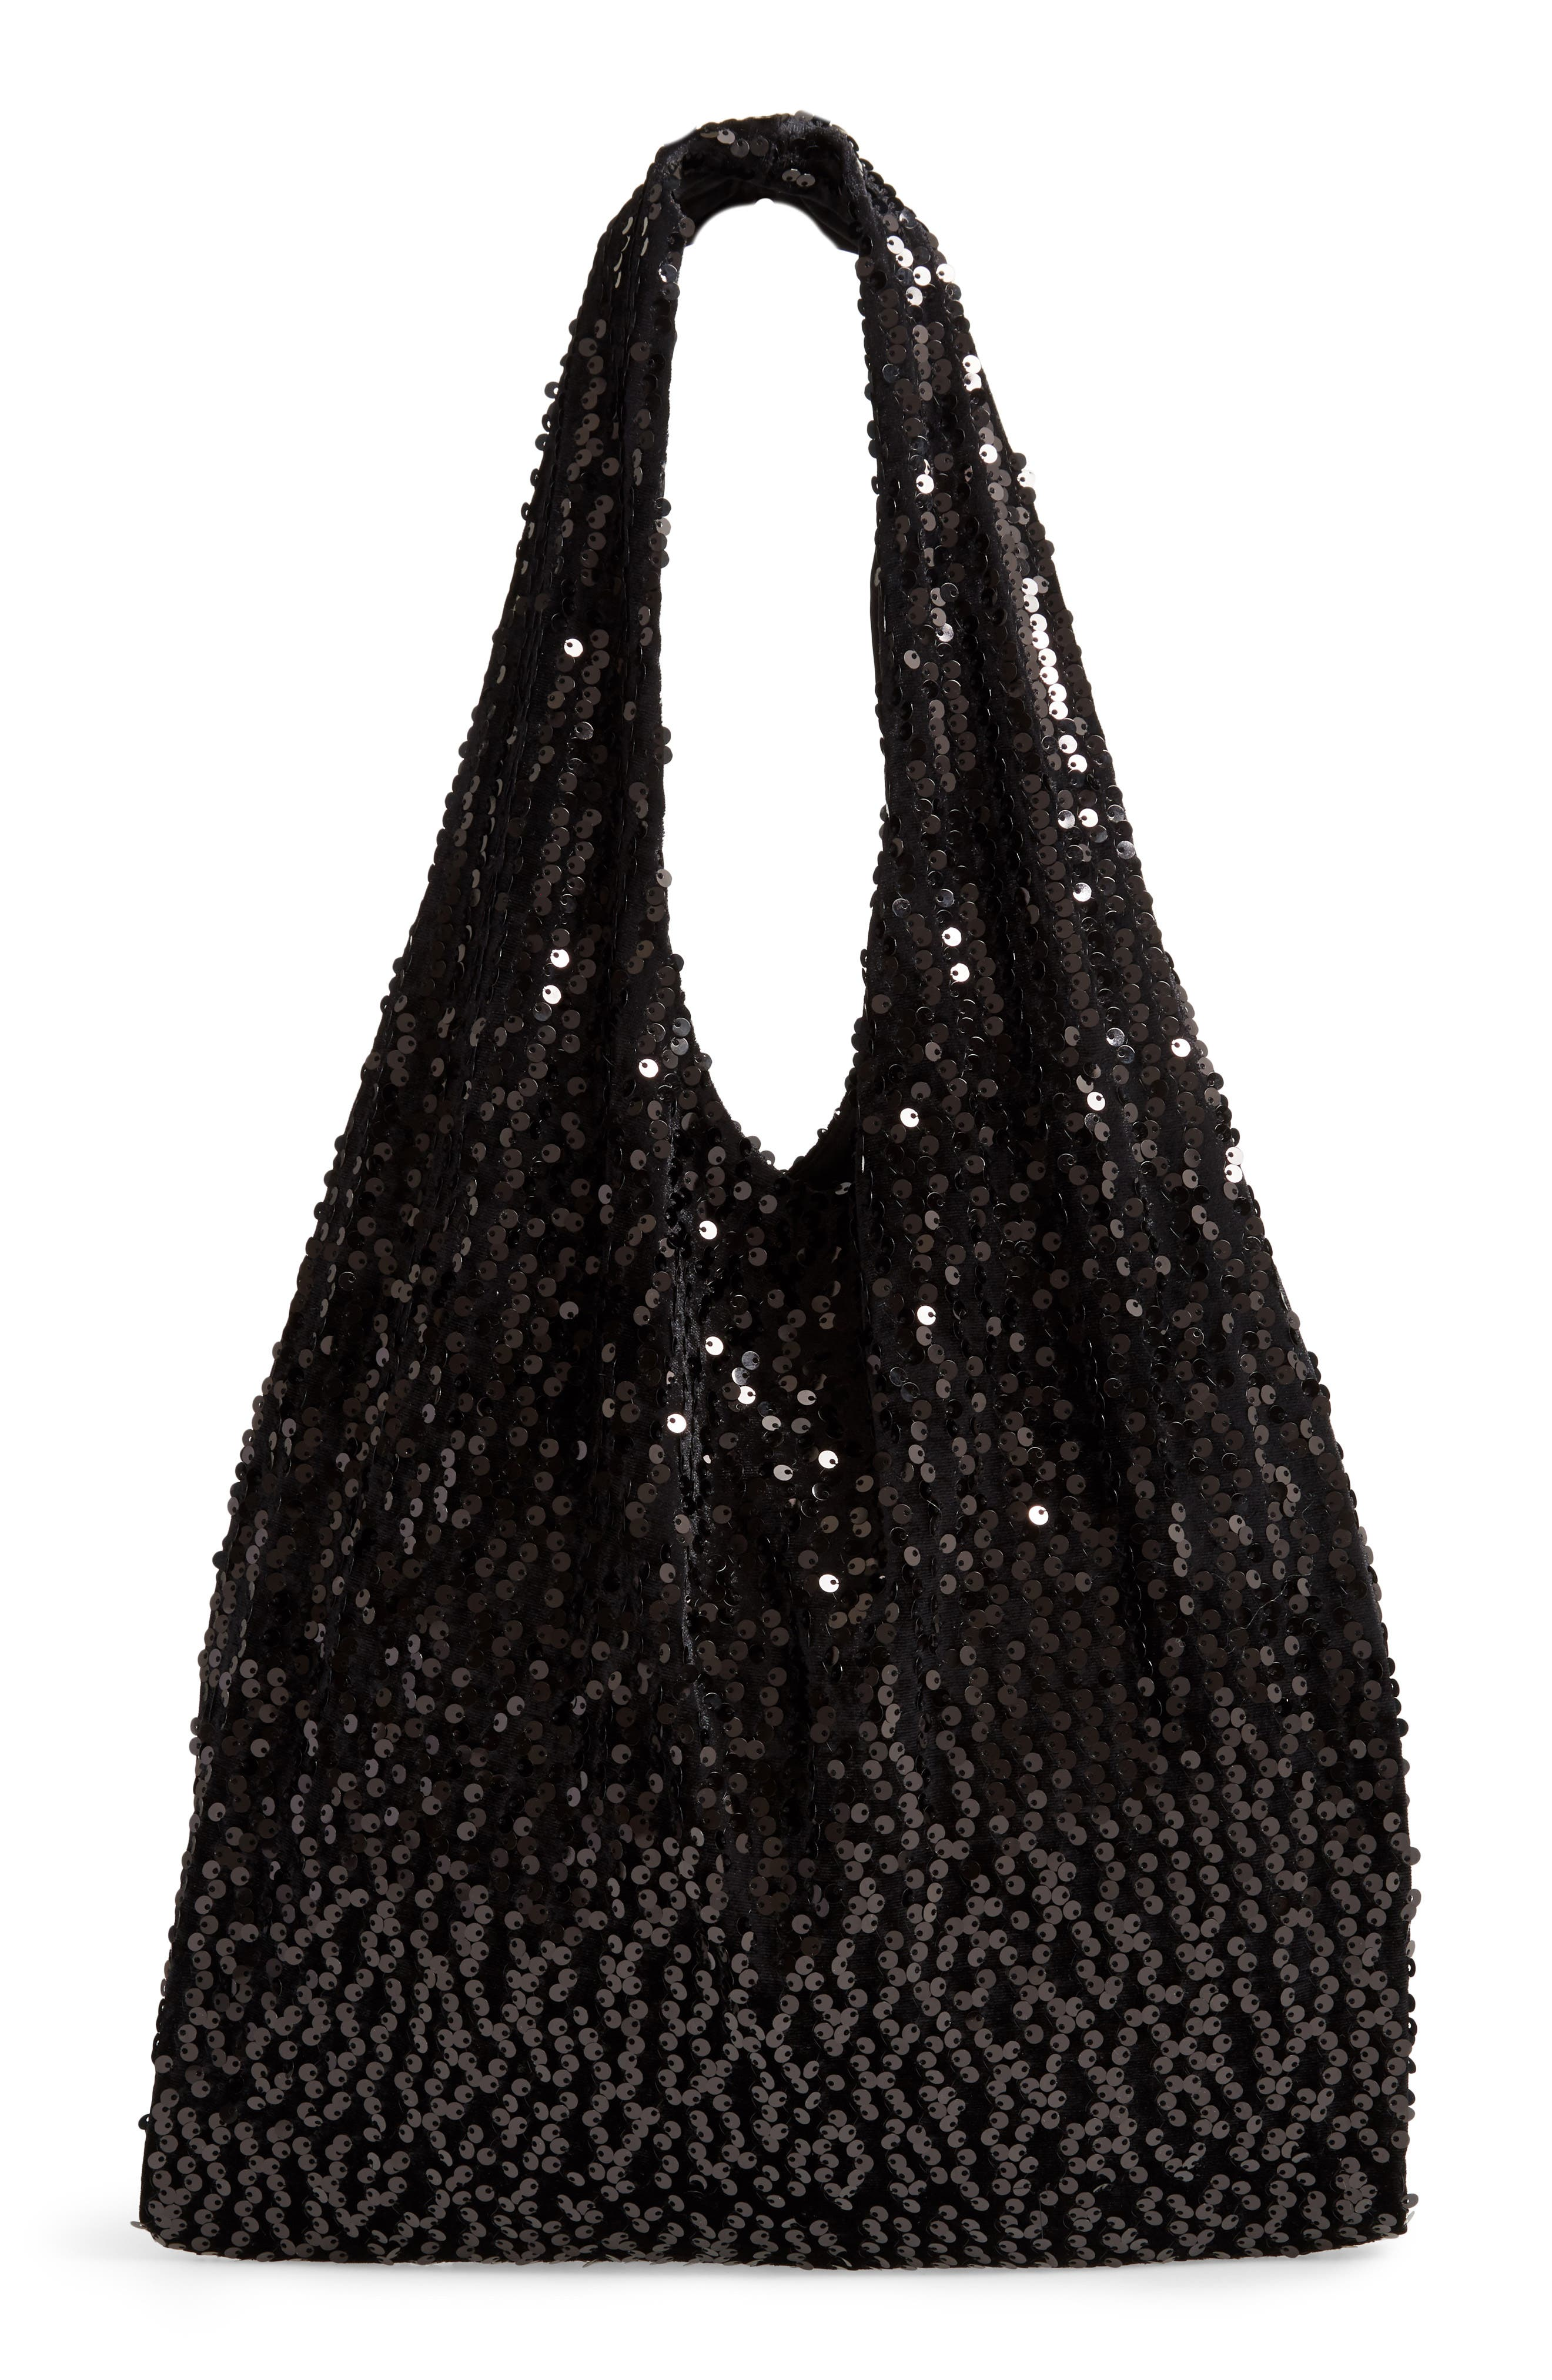 NEW FRIENDS COLONY Sequin Tote - Black